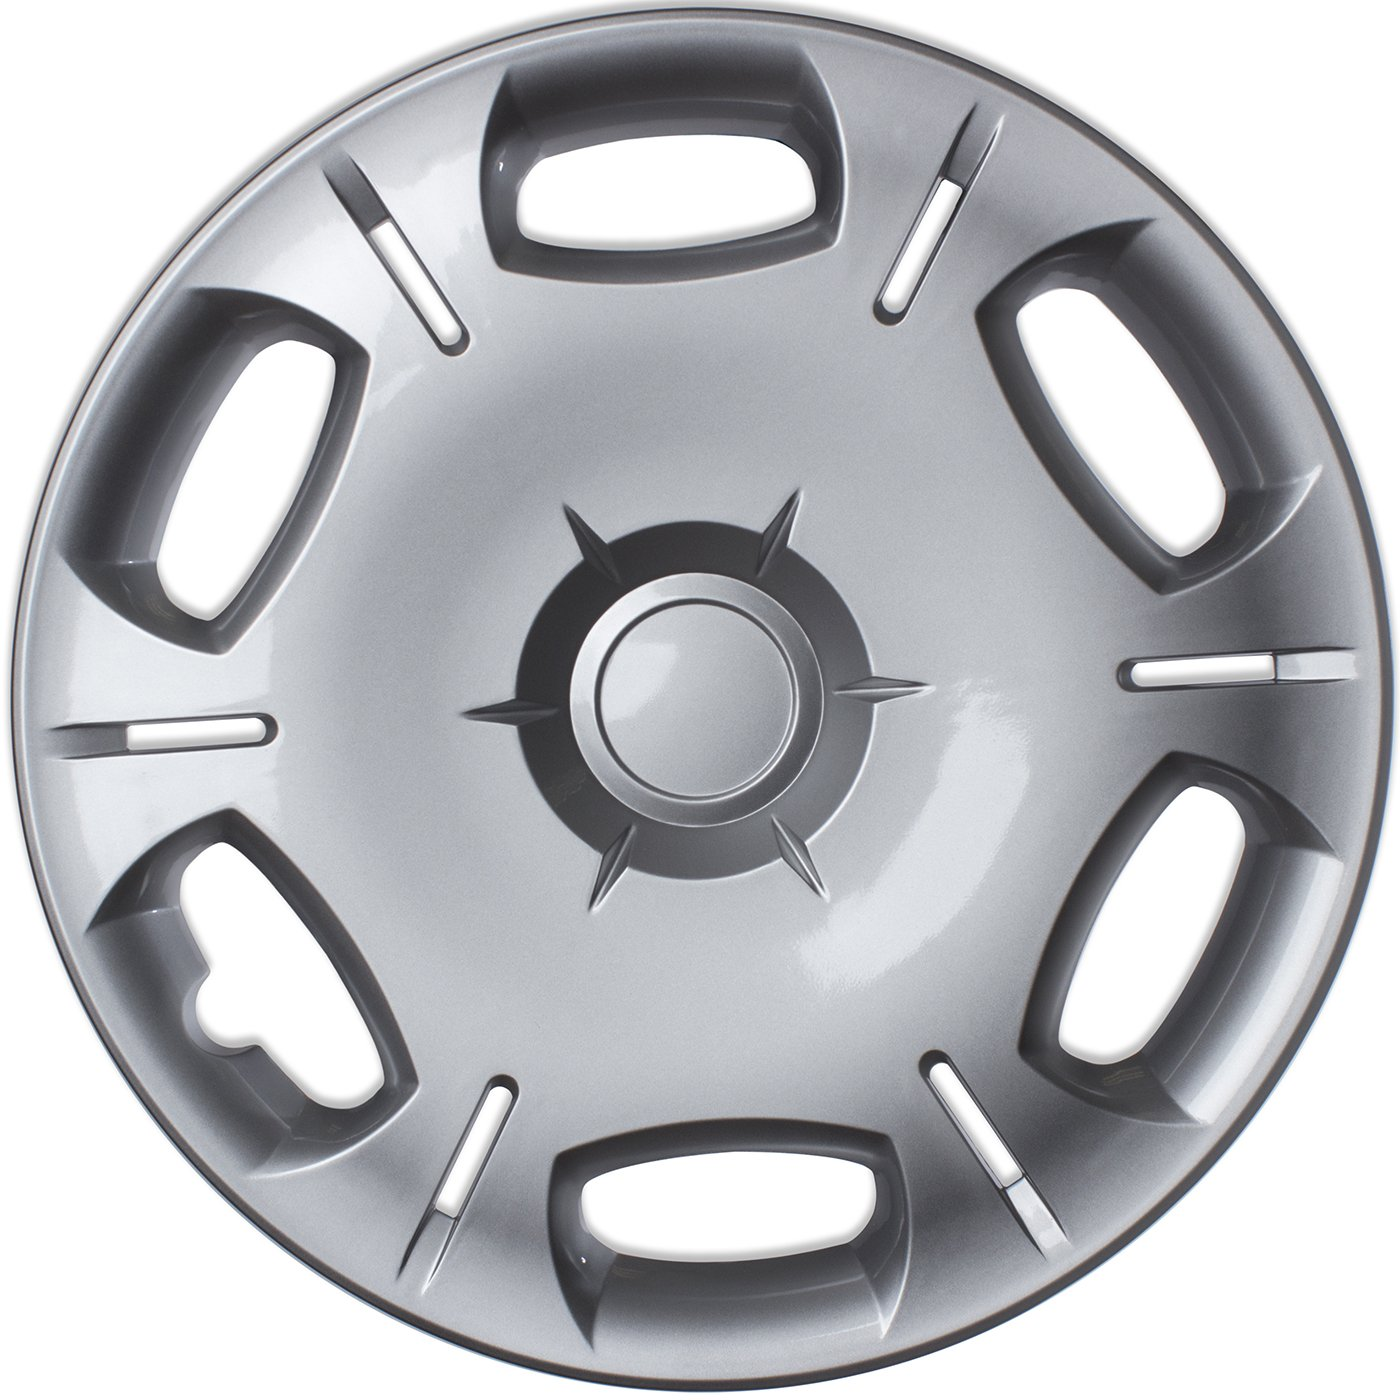 Amazon.com: Hubcaps 16 inch Wheel Covers - (Set of 4) Hub Caps for 16in Wheels Rim Cover - Car Accessories Silver Hubcap Best for 16inch Cars Standard Steel ...